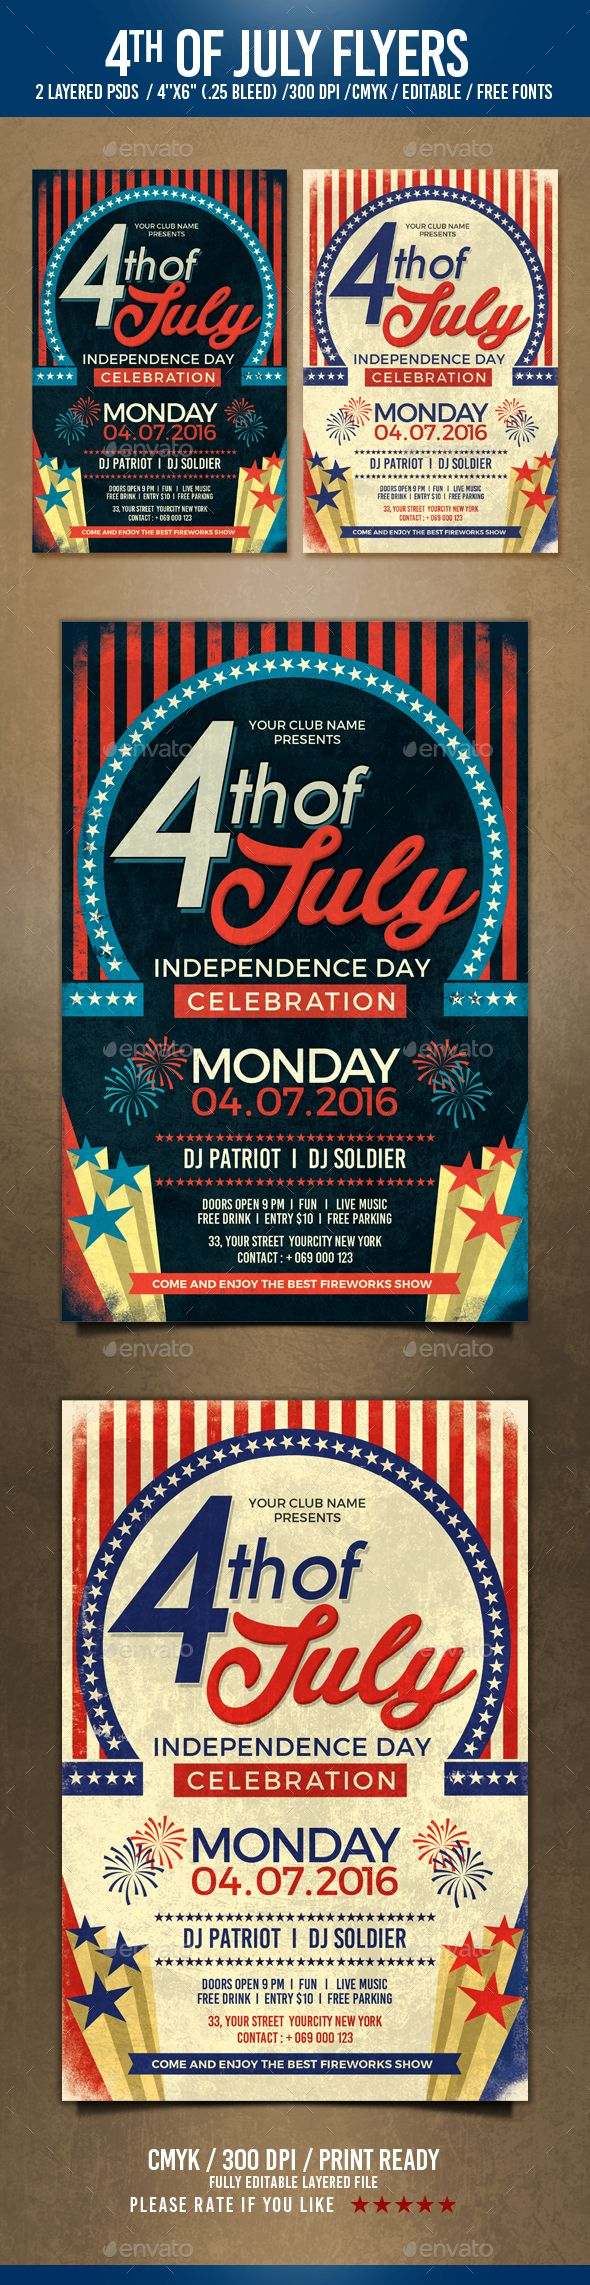 4th of July Flyer Template PSD. Download here: http://graphicriver.net/item/4th-of-july/16499867?ref=ksioks